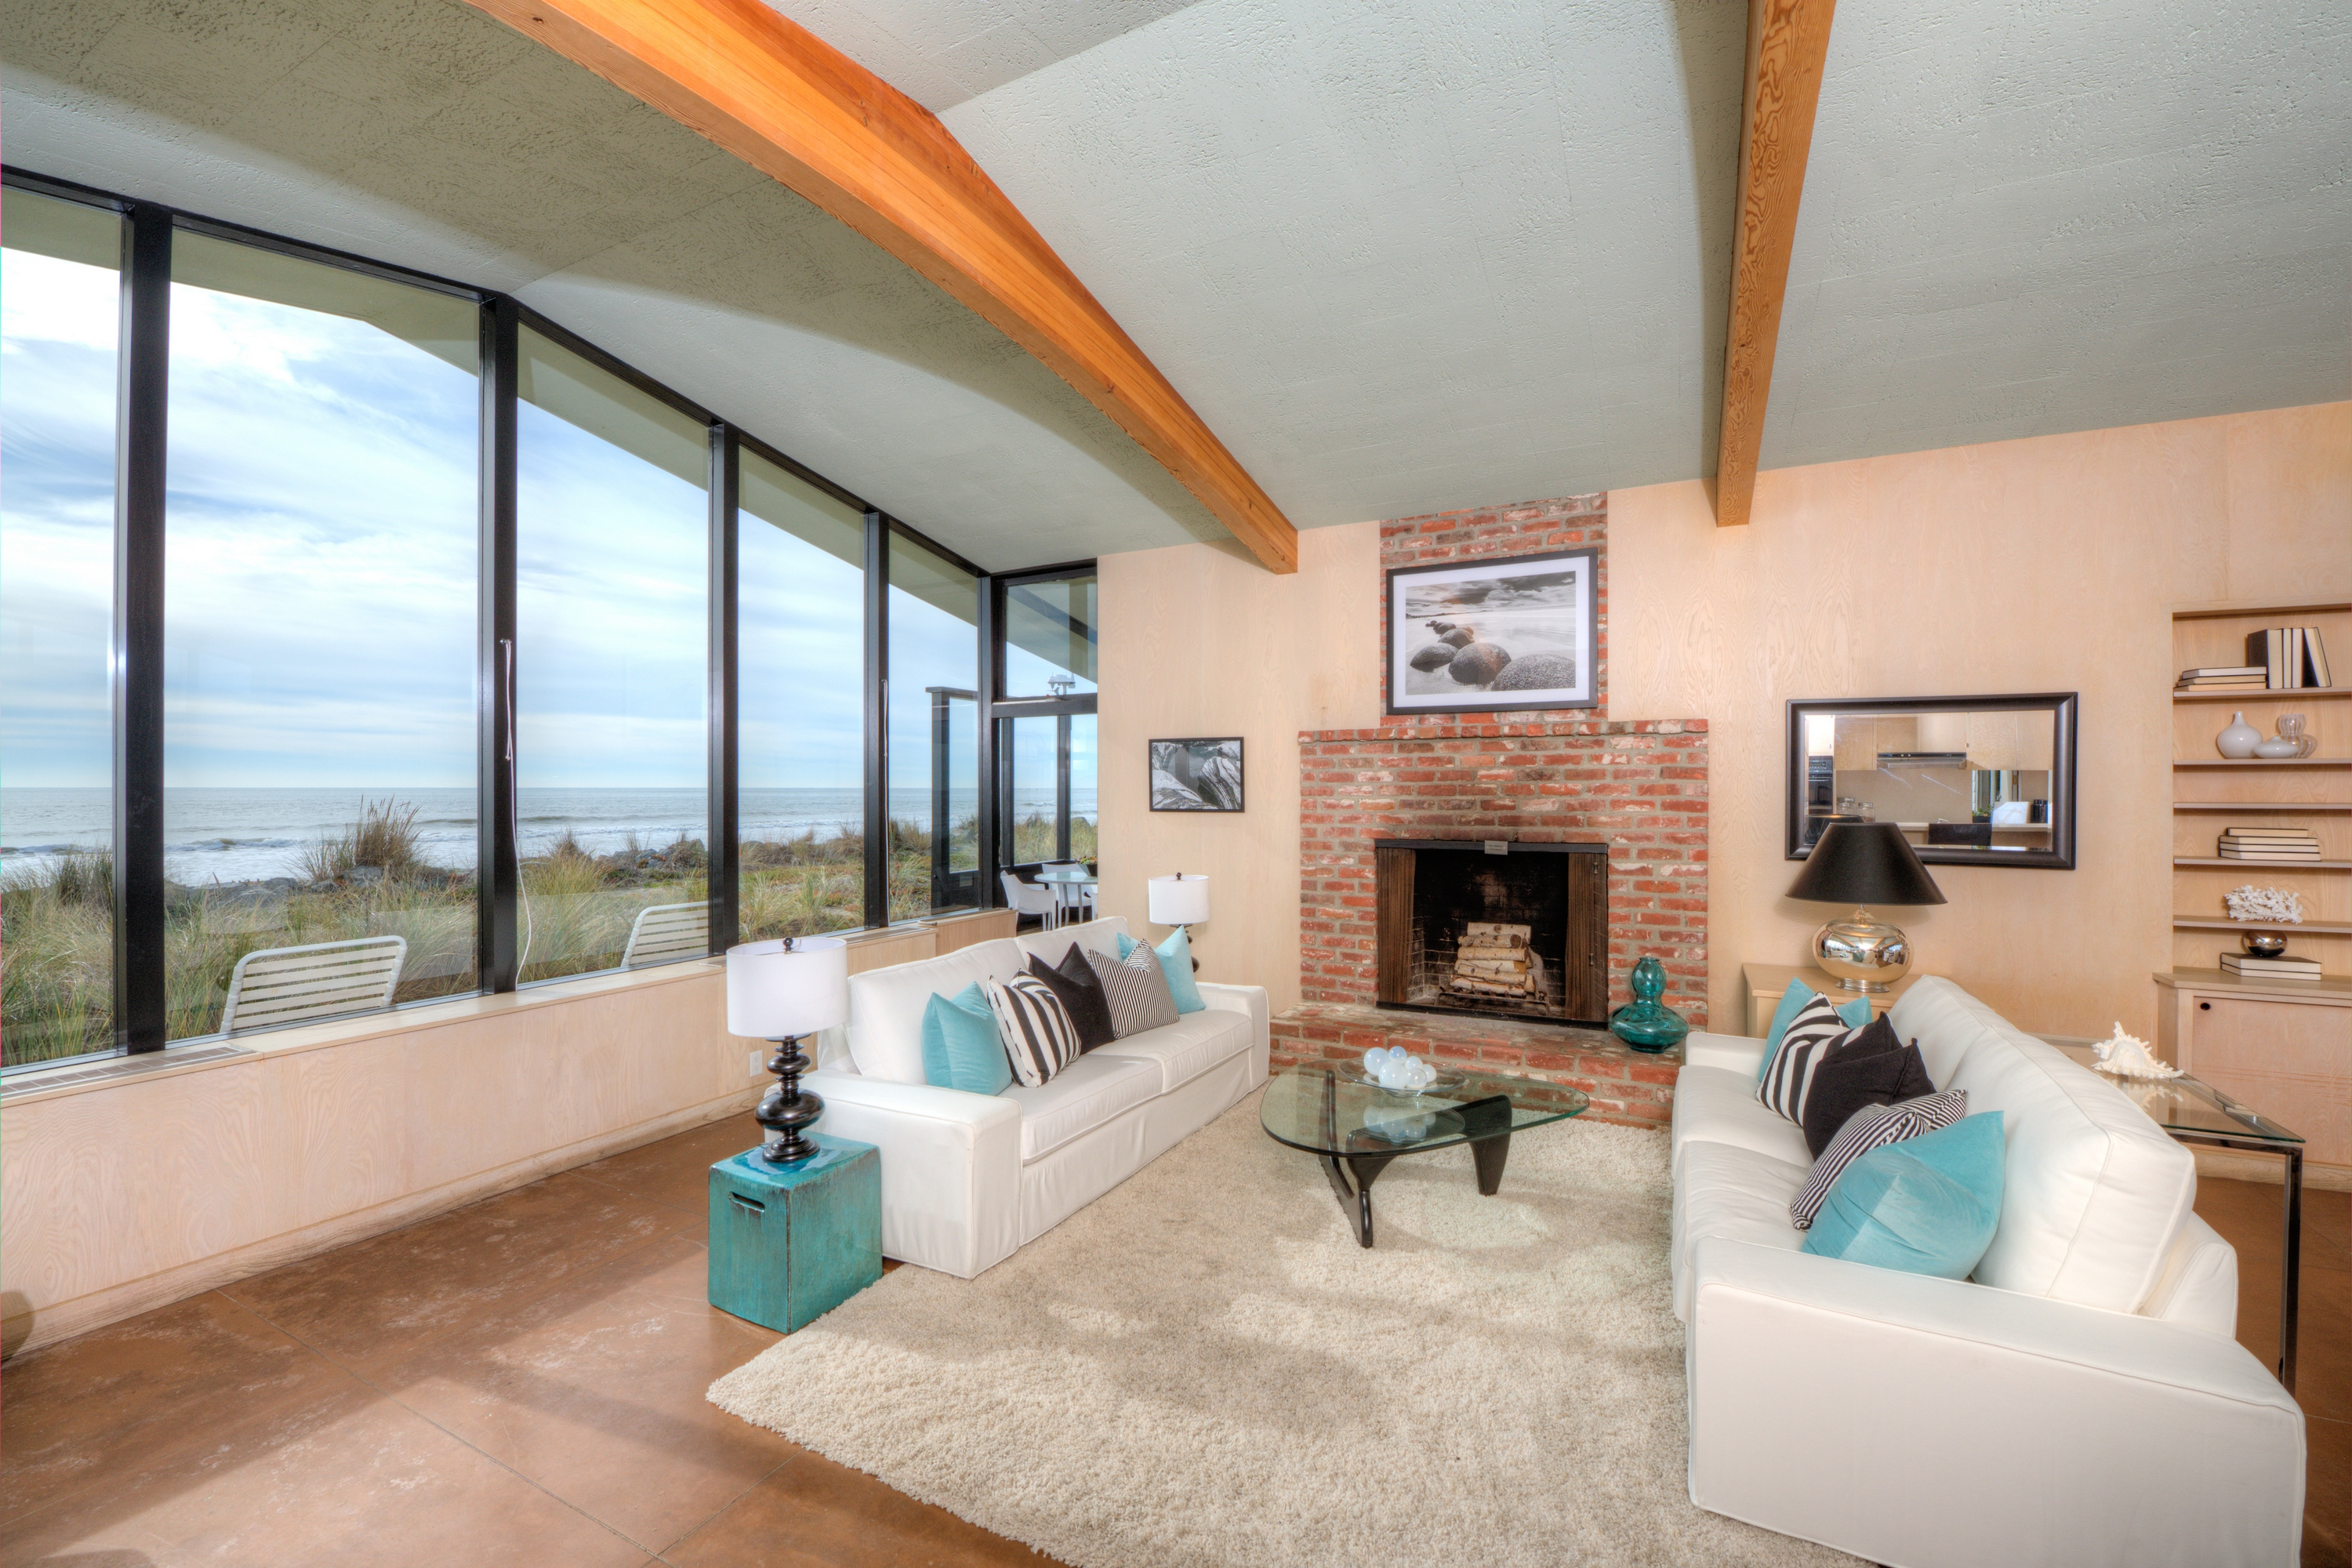 獨棟家庭住宅 為 出售 在 Oceanfront Property in Coveted Private Community 284 Seadrift Rd Stinson Beach, 加利福尼亞州 94970 美國